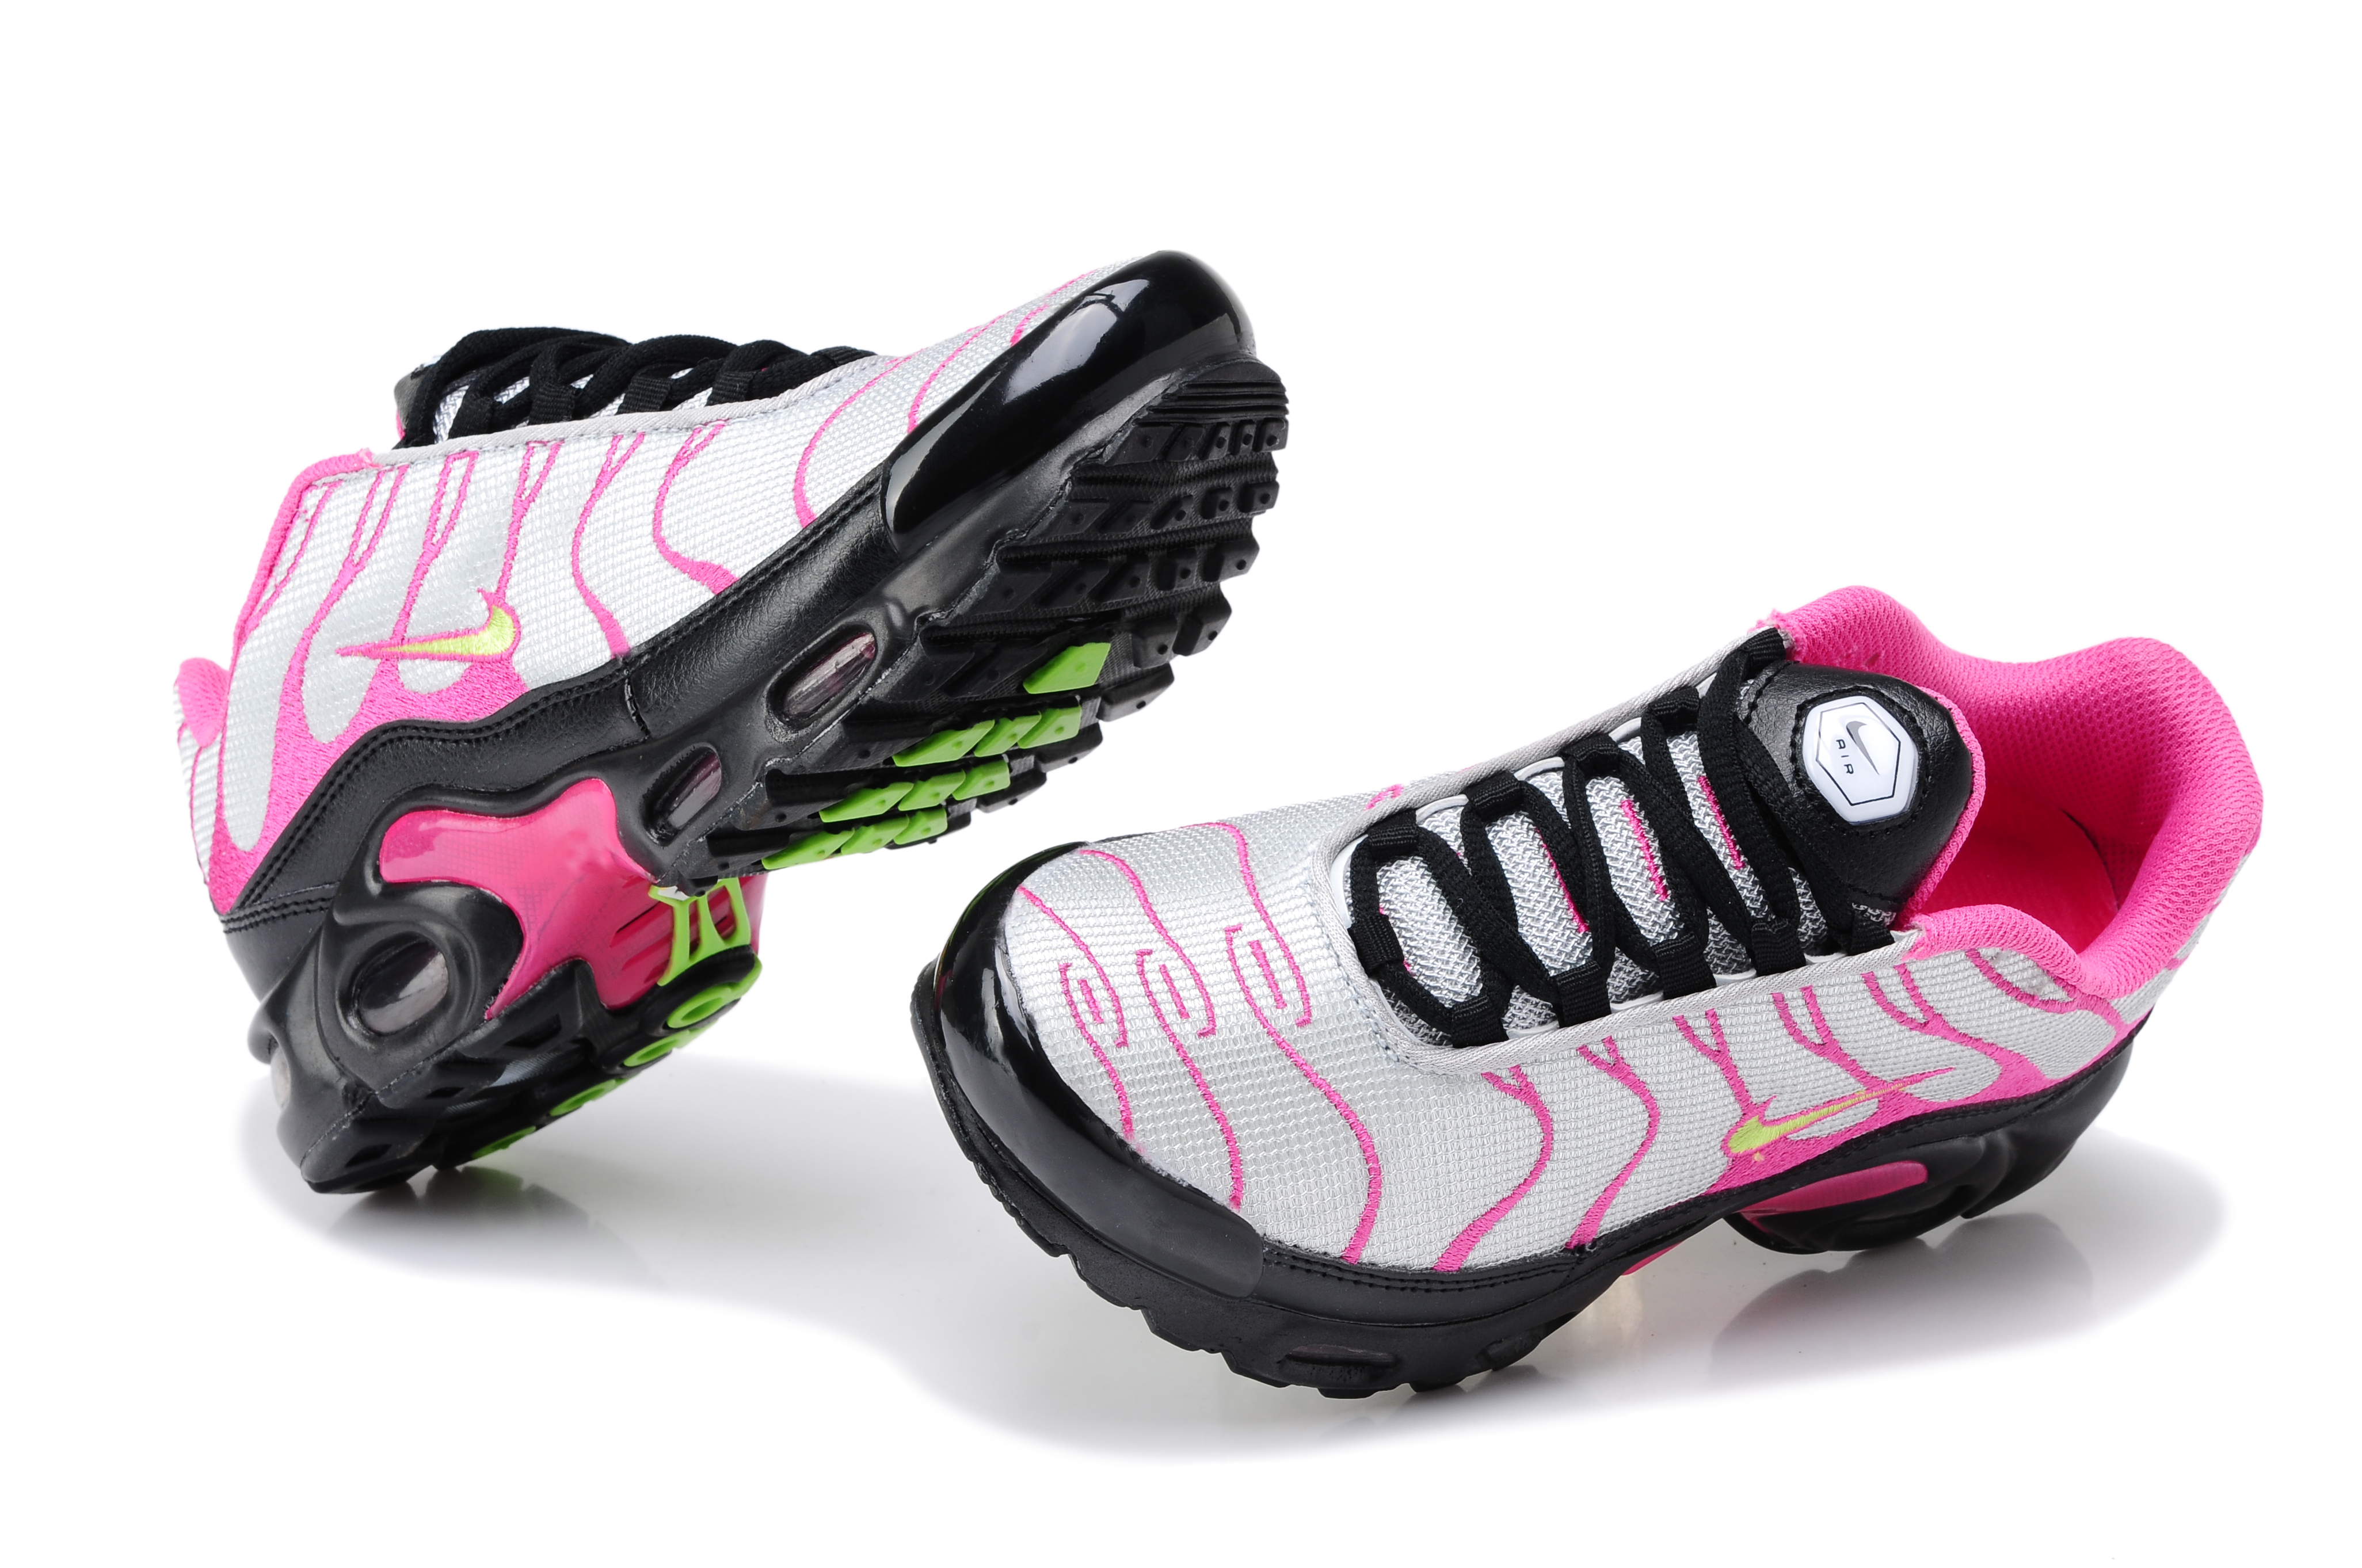 huge selection of dbd9b 823f2 air max tn femme avec chien